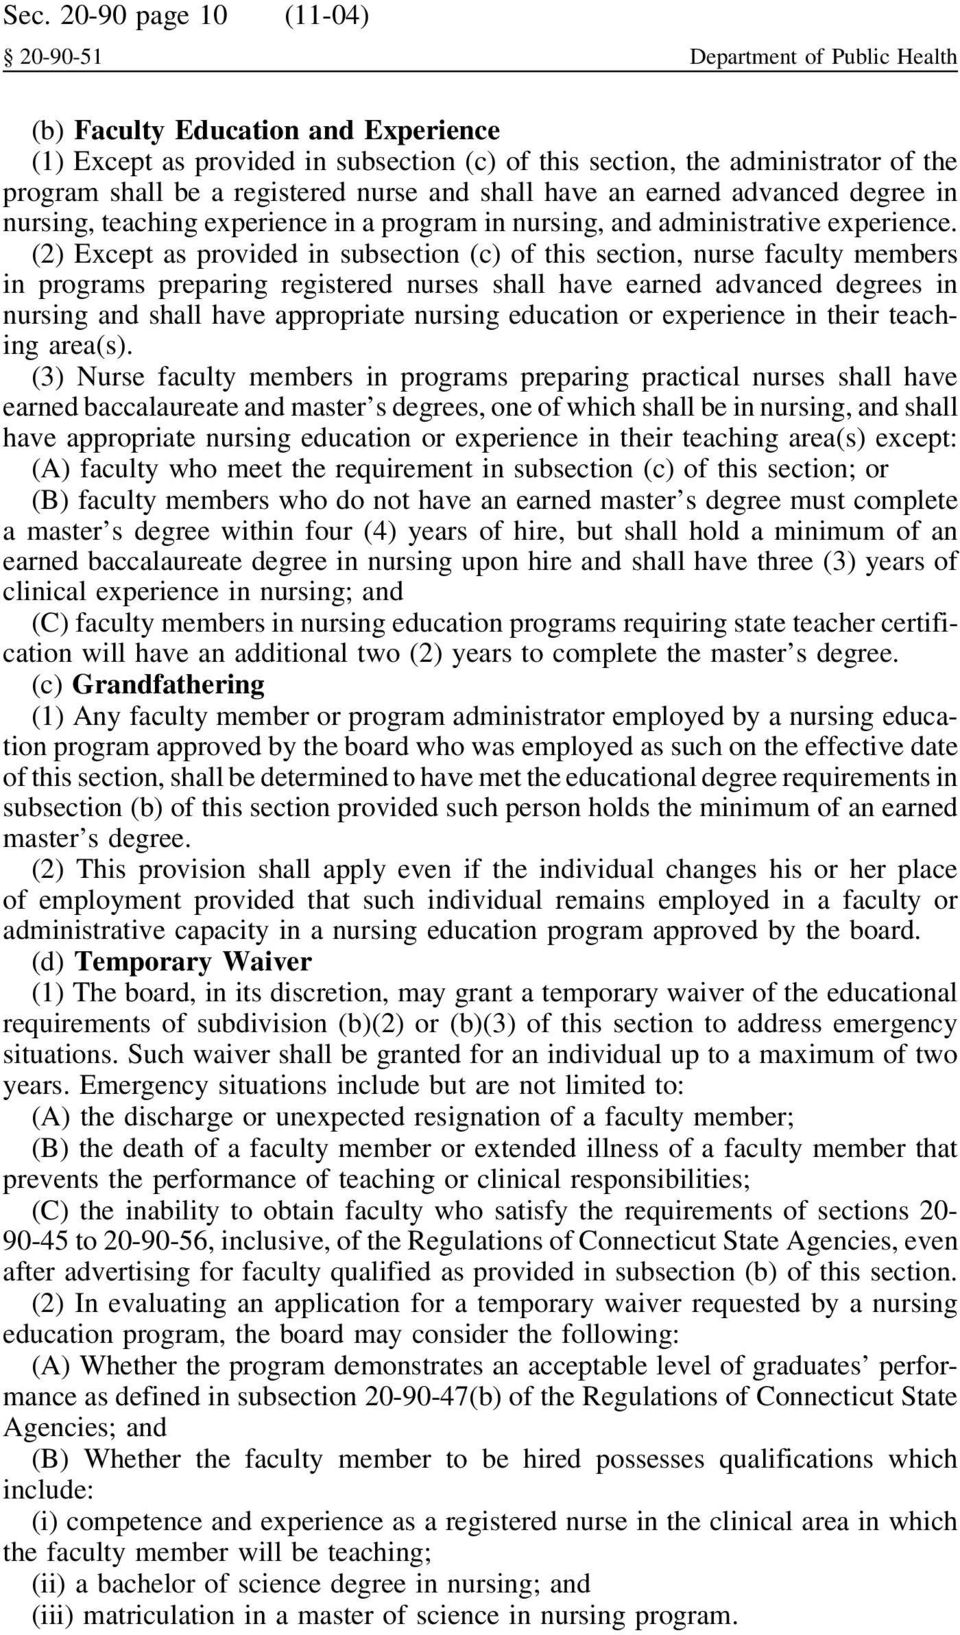 (2) Except as provided in subsection (c) of this section, nurse faculty members in programs preparing registered nurses shall have earned advanced degrees in nursing and shall have appropriate